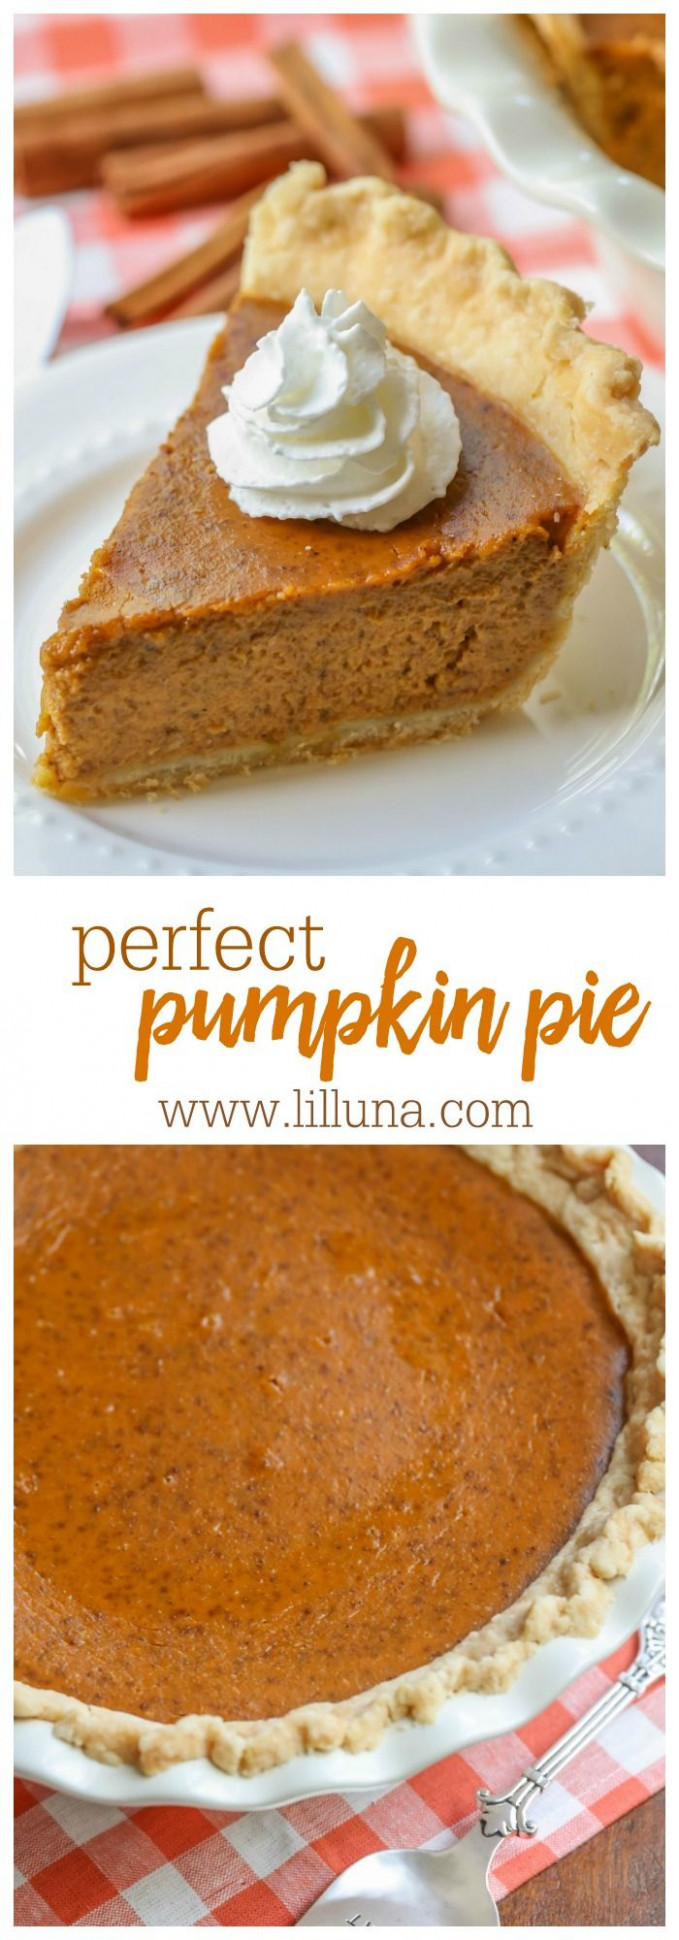 Best 25+ Pumpkin pies ideas on Pinterest | Cooks pumpkin ...